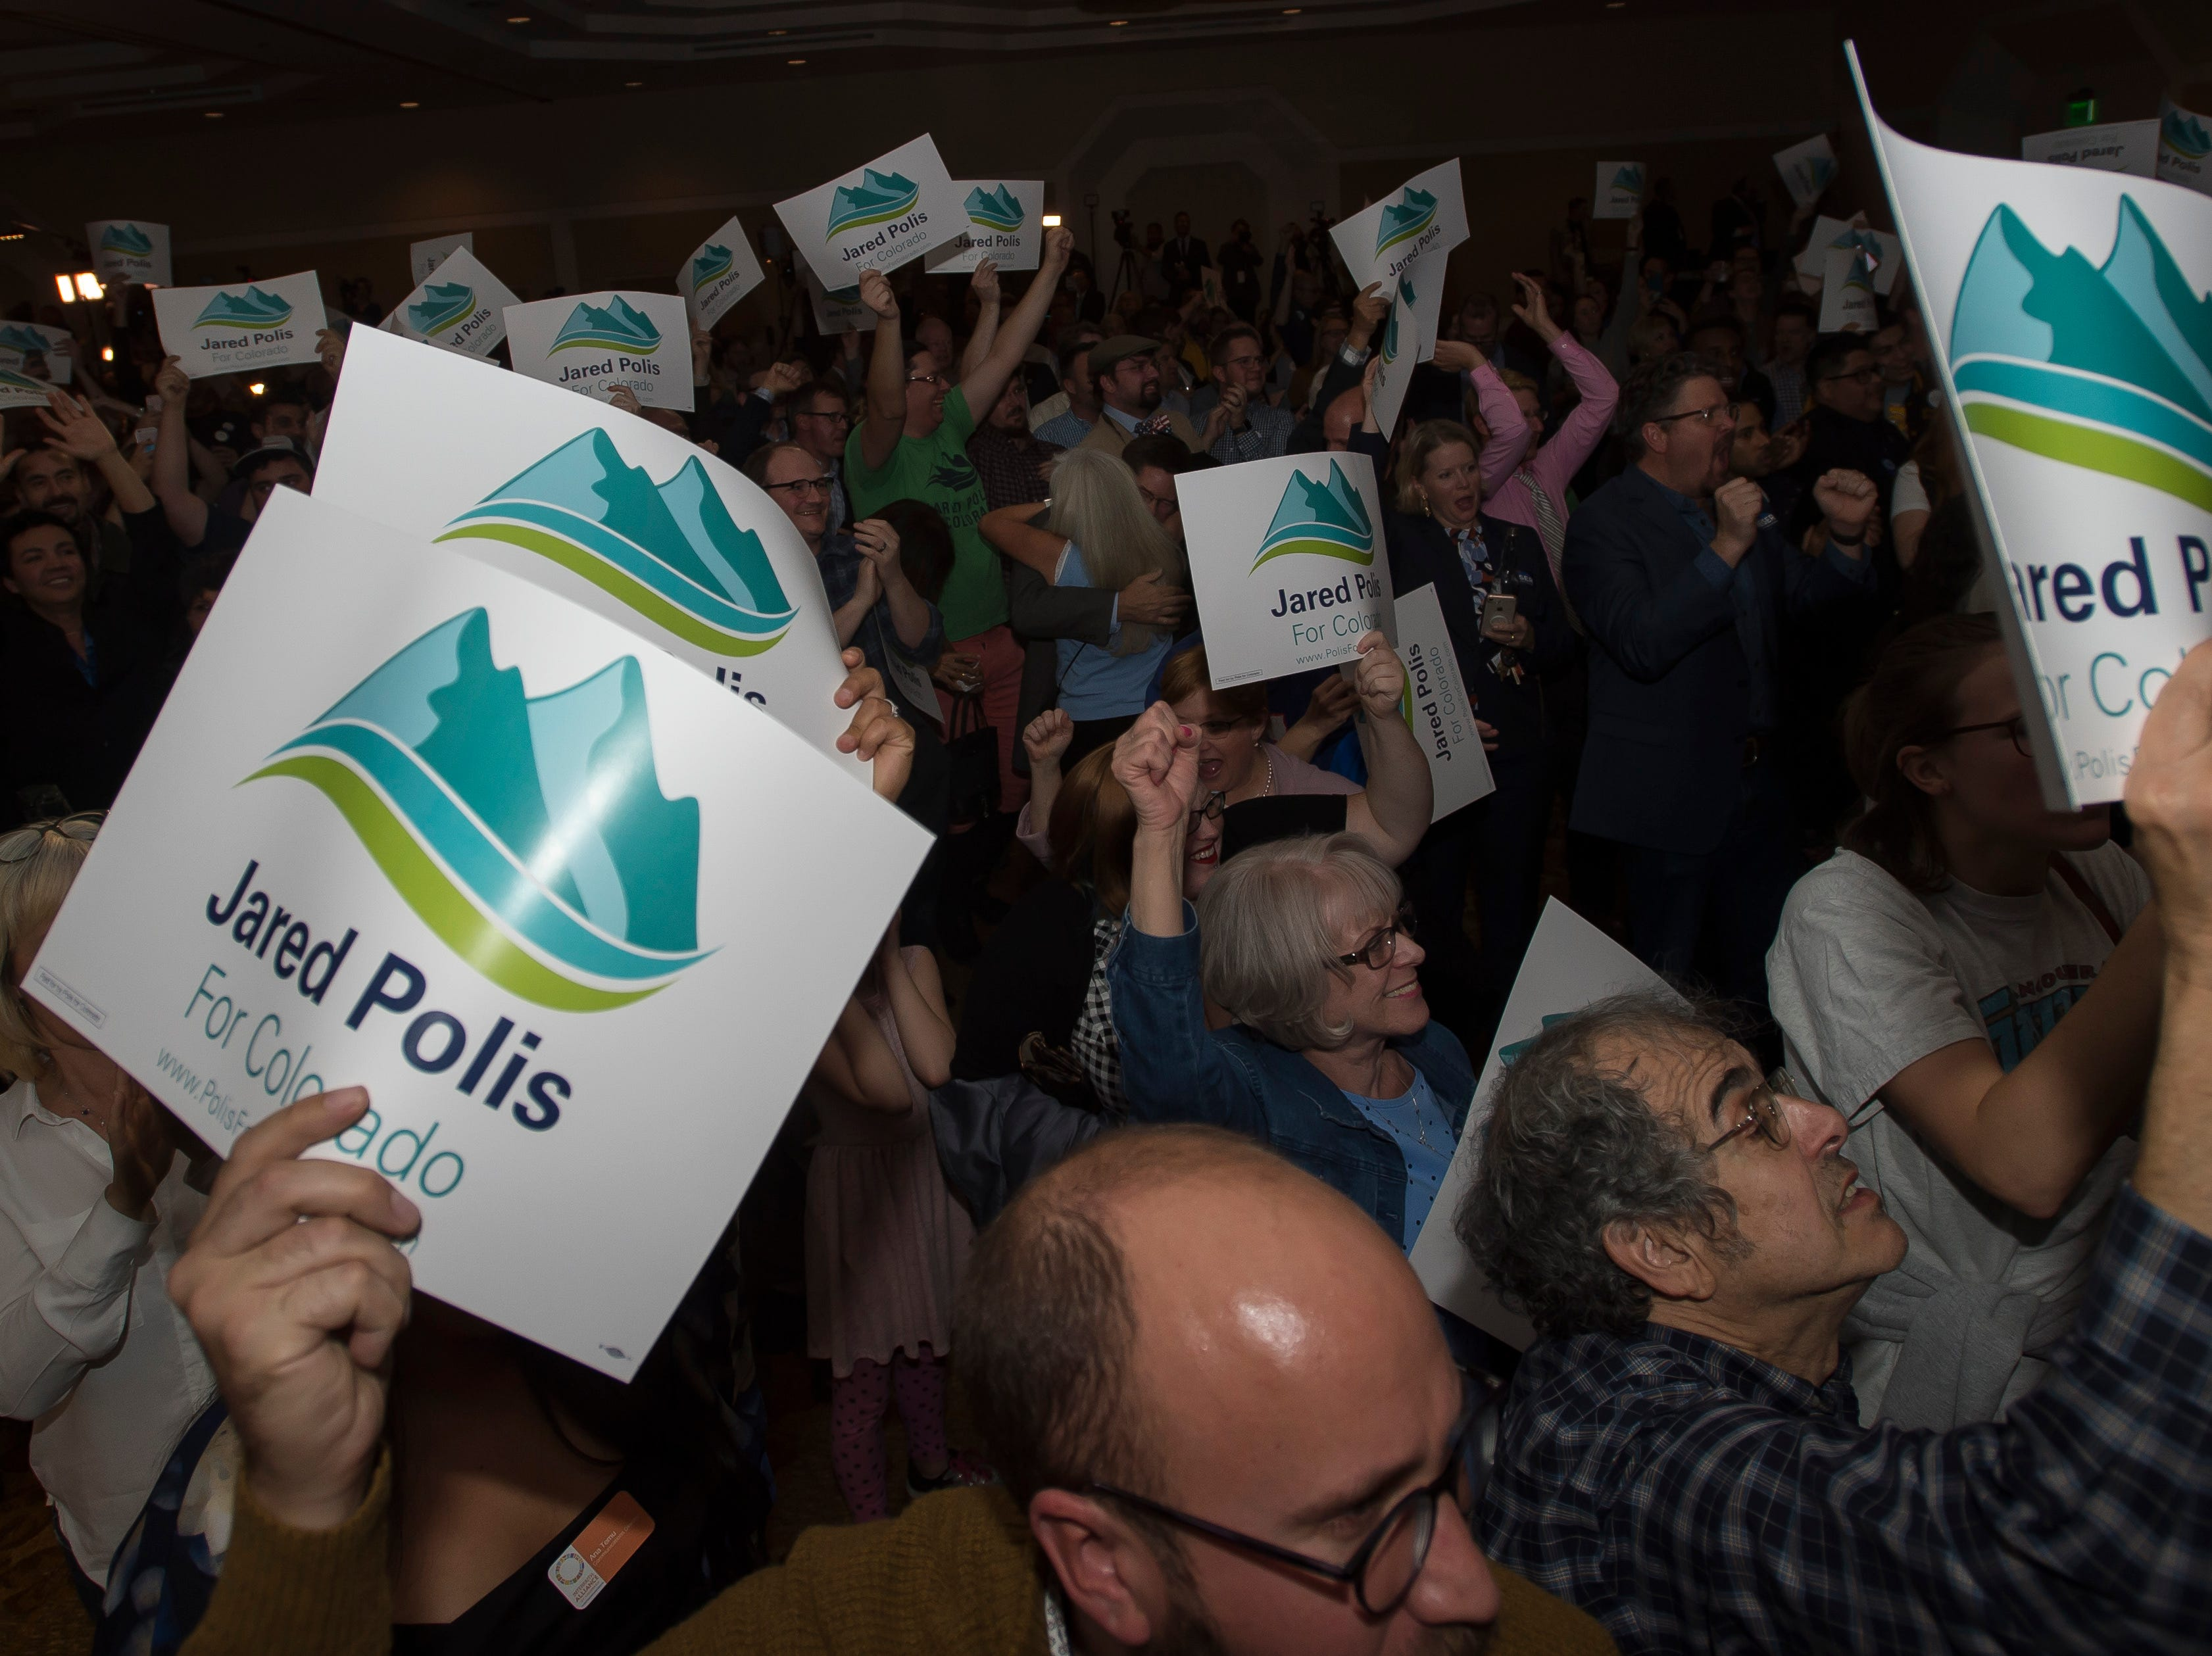 The crowd cheers as election results are broadcast during Democratic candidate for Colorado governor Jared Polis' election watch party on Tuesday, Nov. 6, 2018, at the Westin Denver Downtown hotel in Denver, Colo.